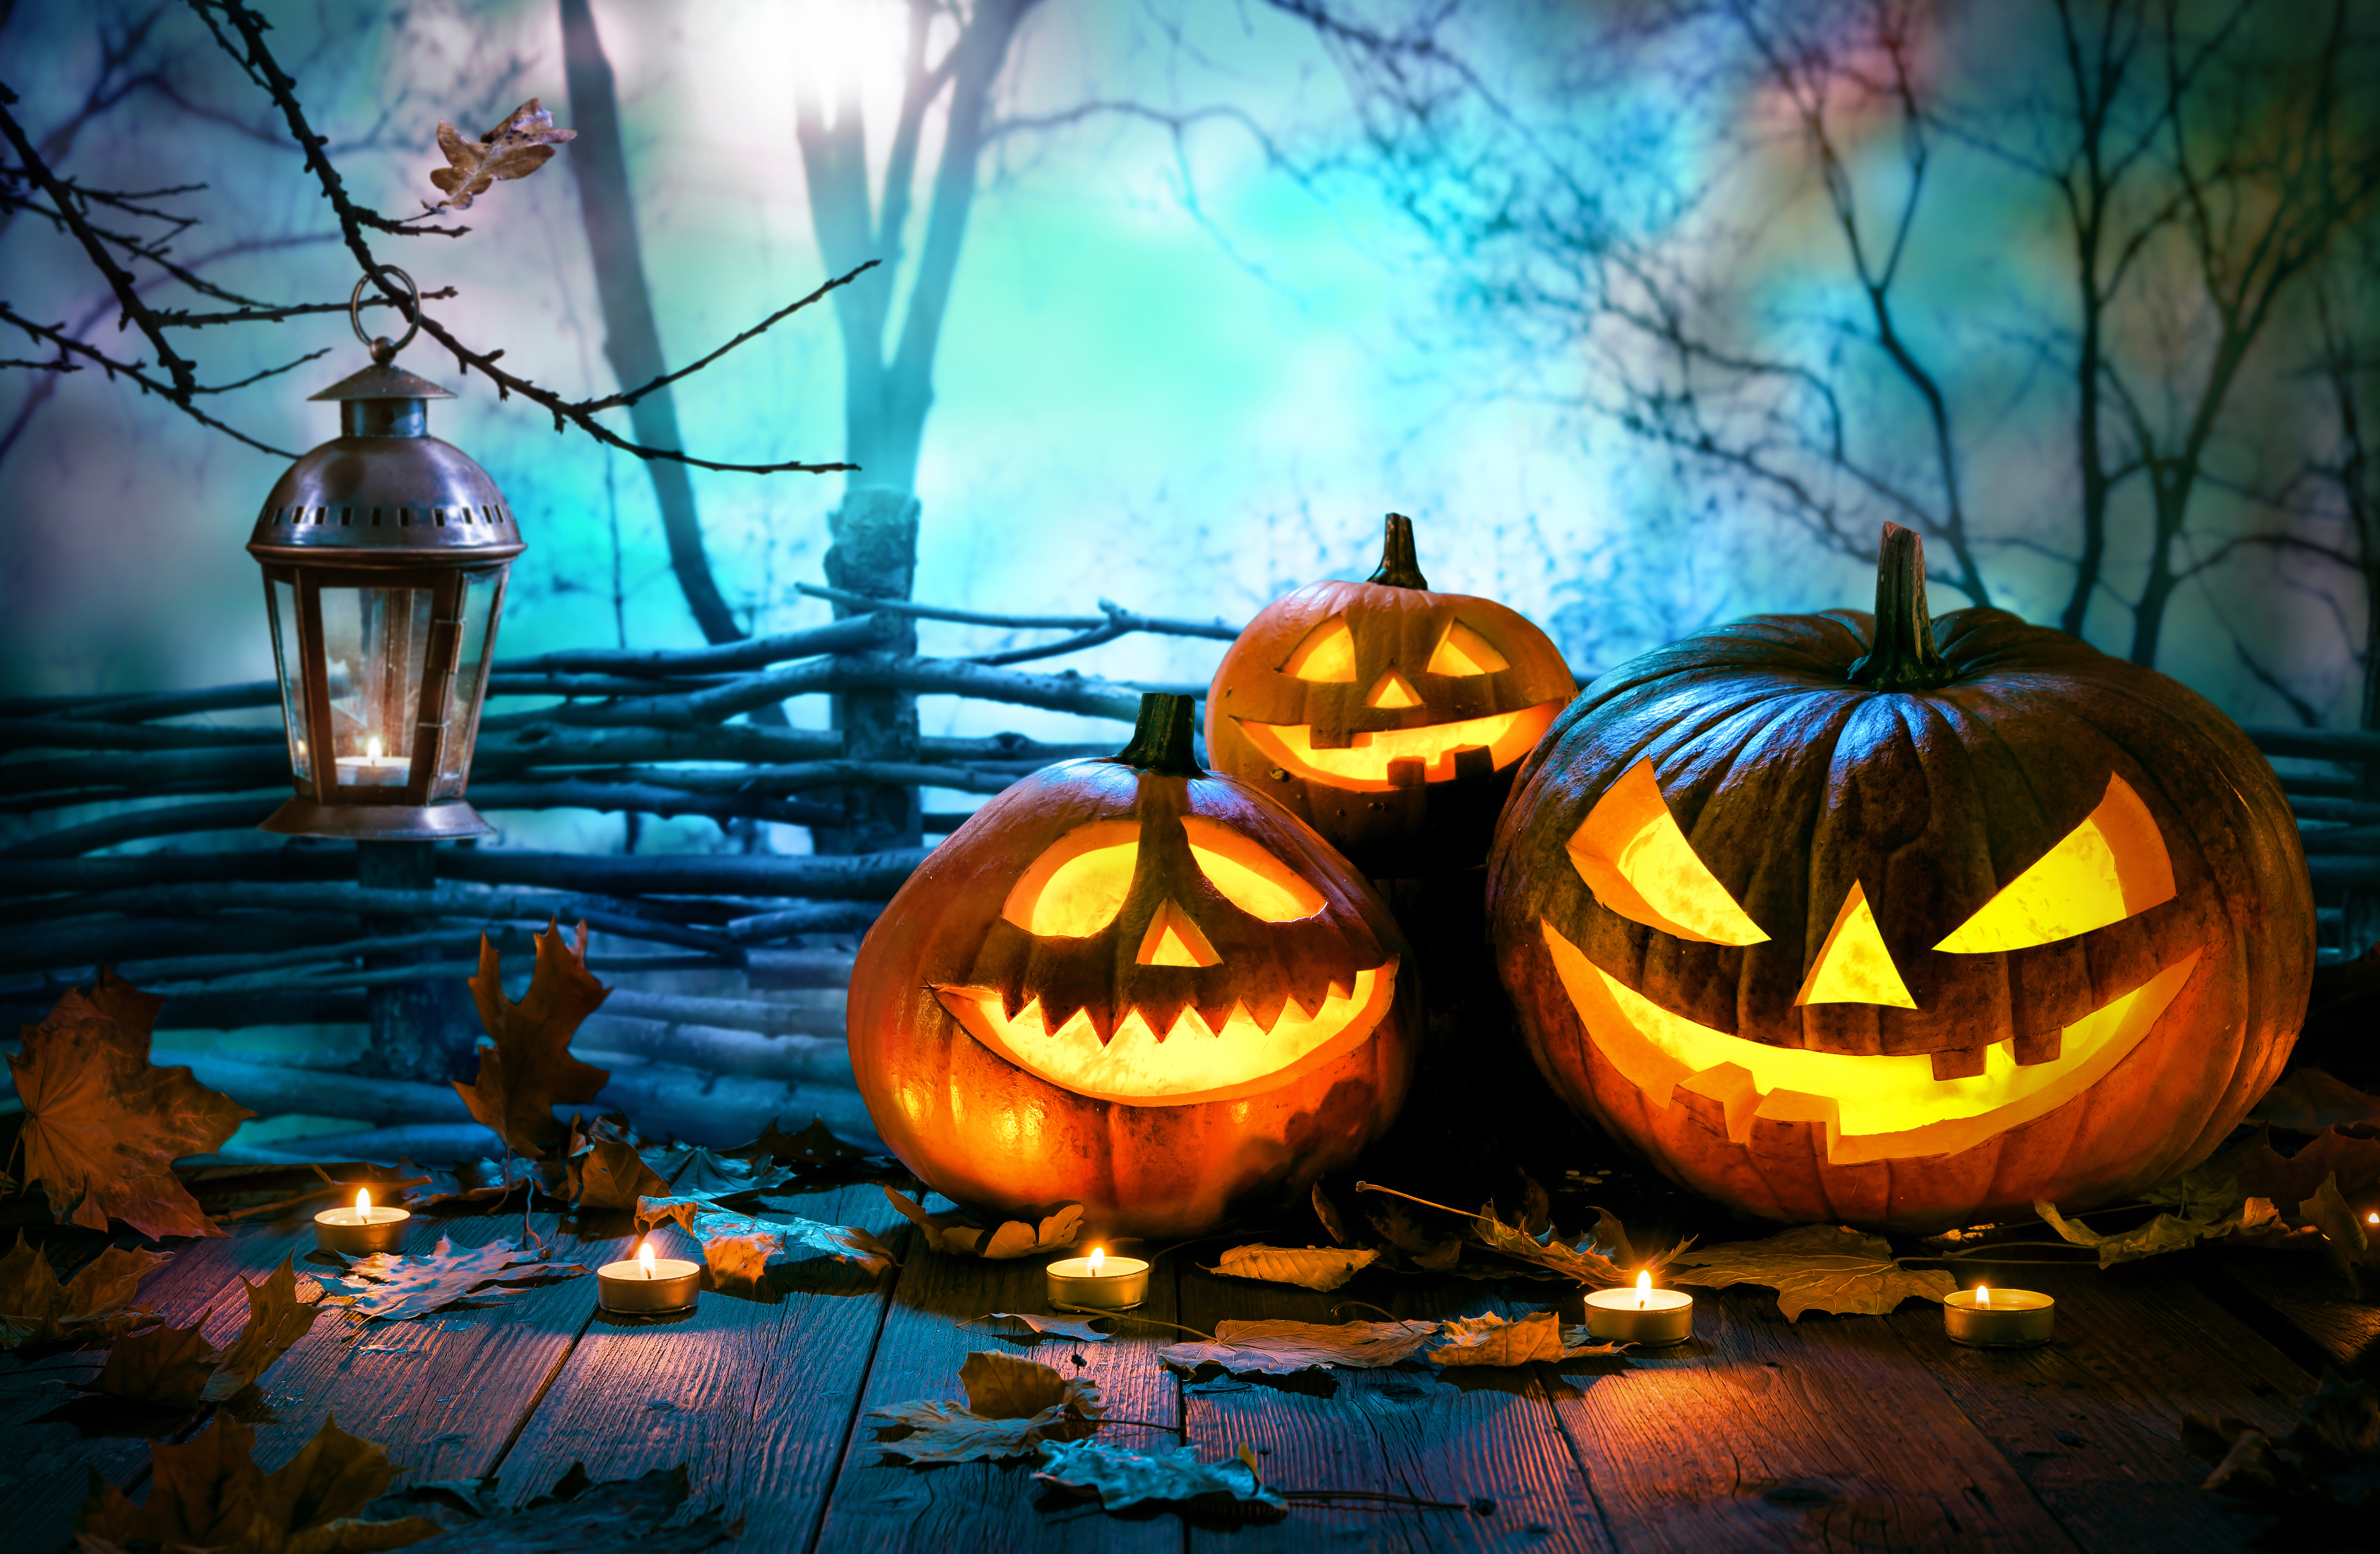 Creep it Real in Torrance this Halloween - Discover Torrance